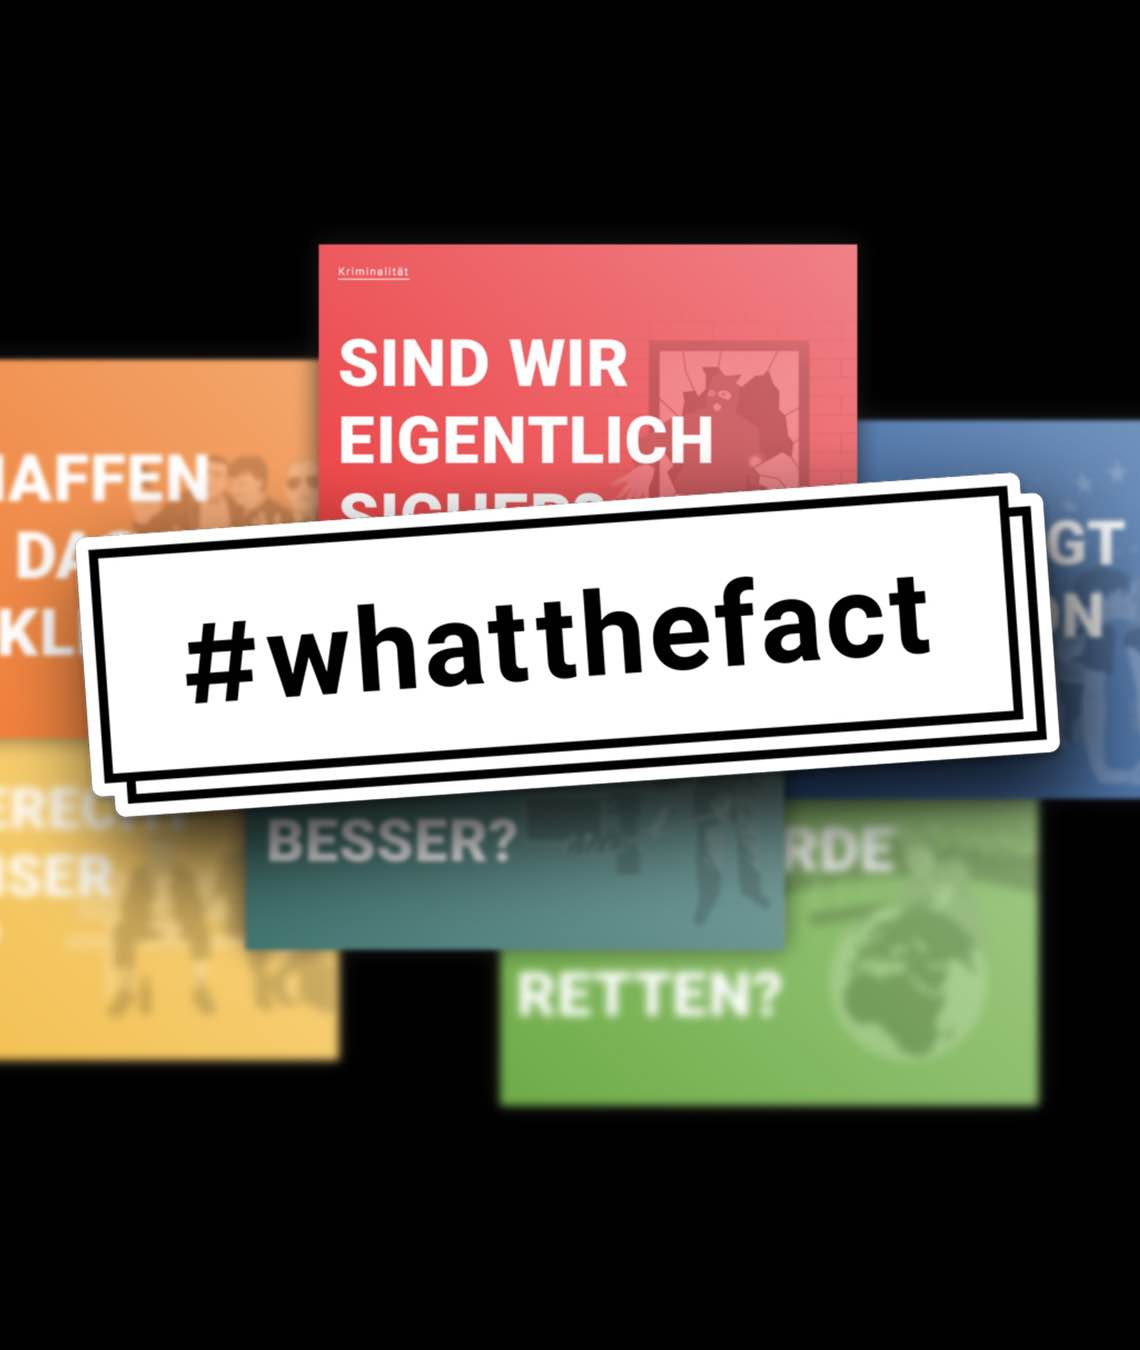 what-the-fact-fake-news-webentwicklung